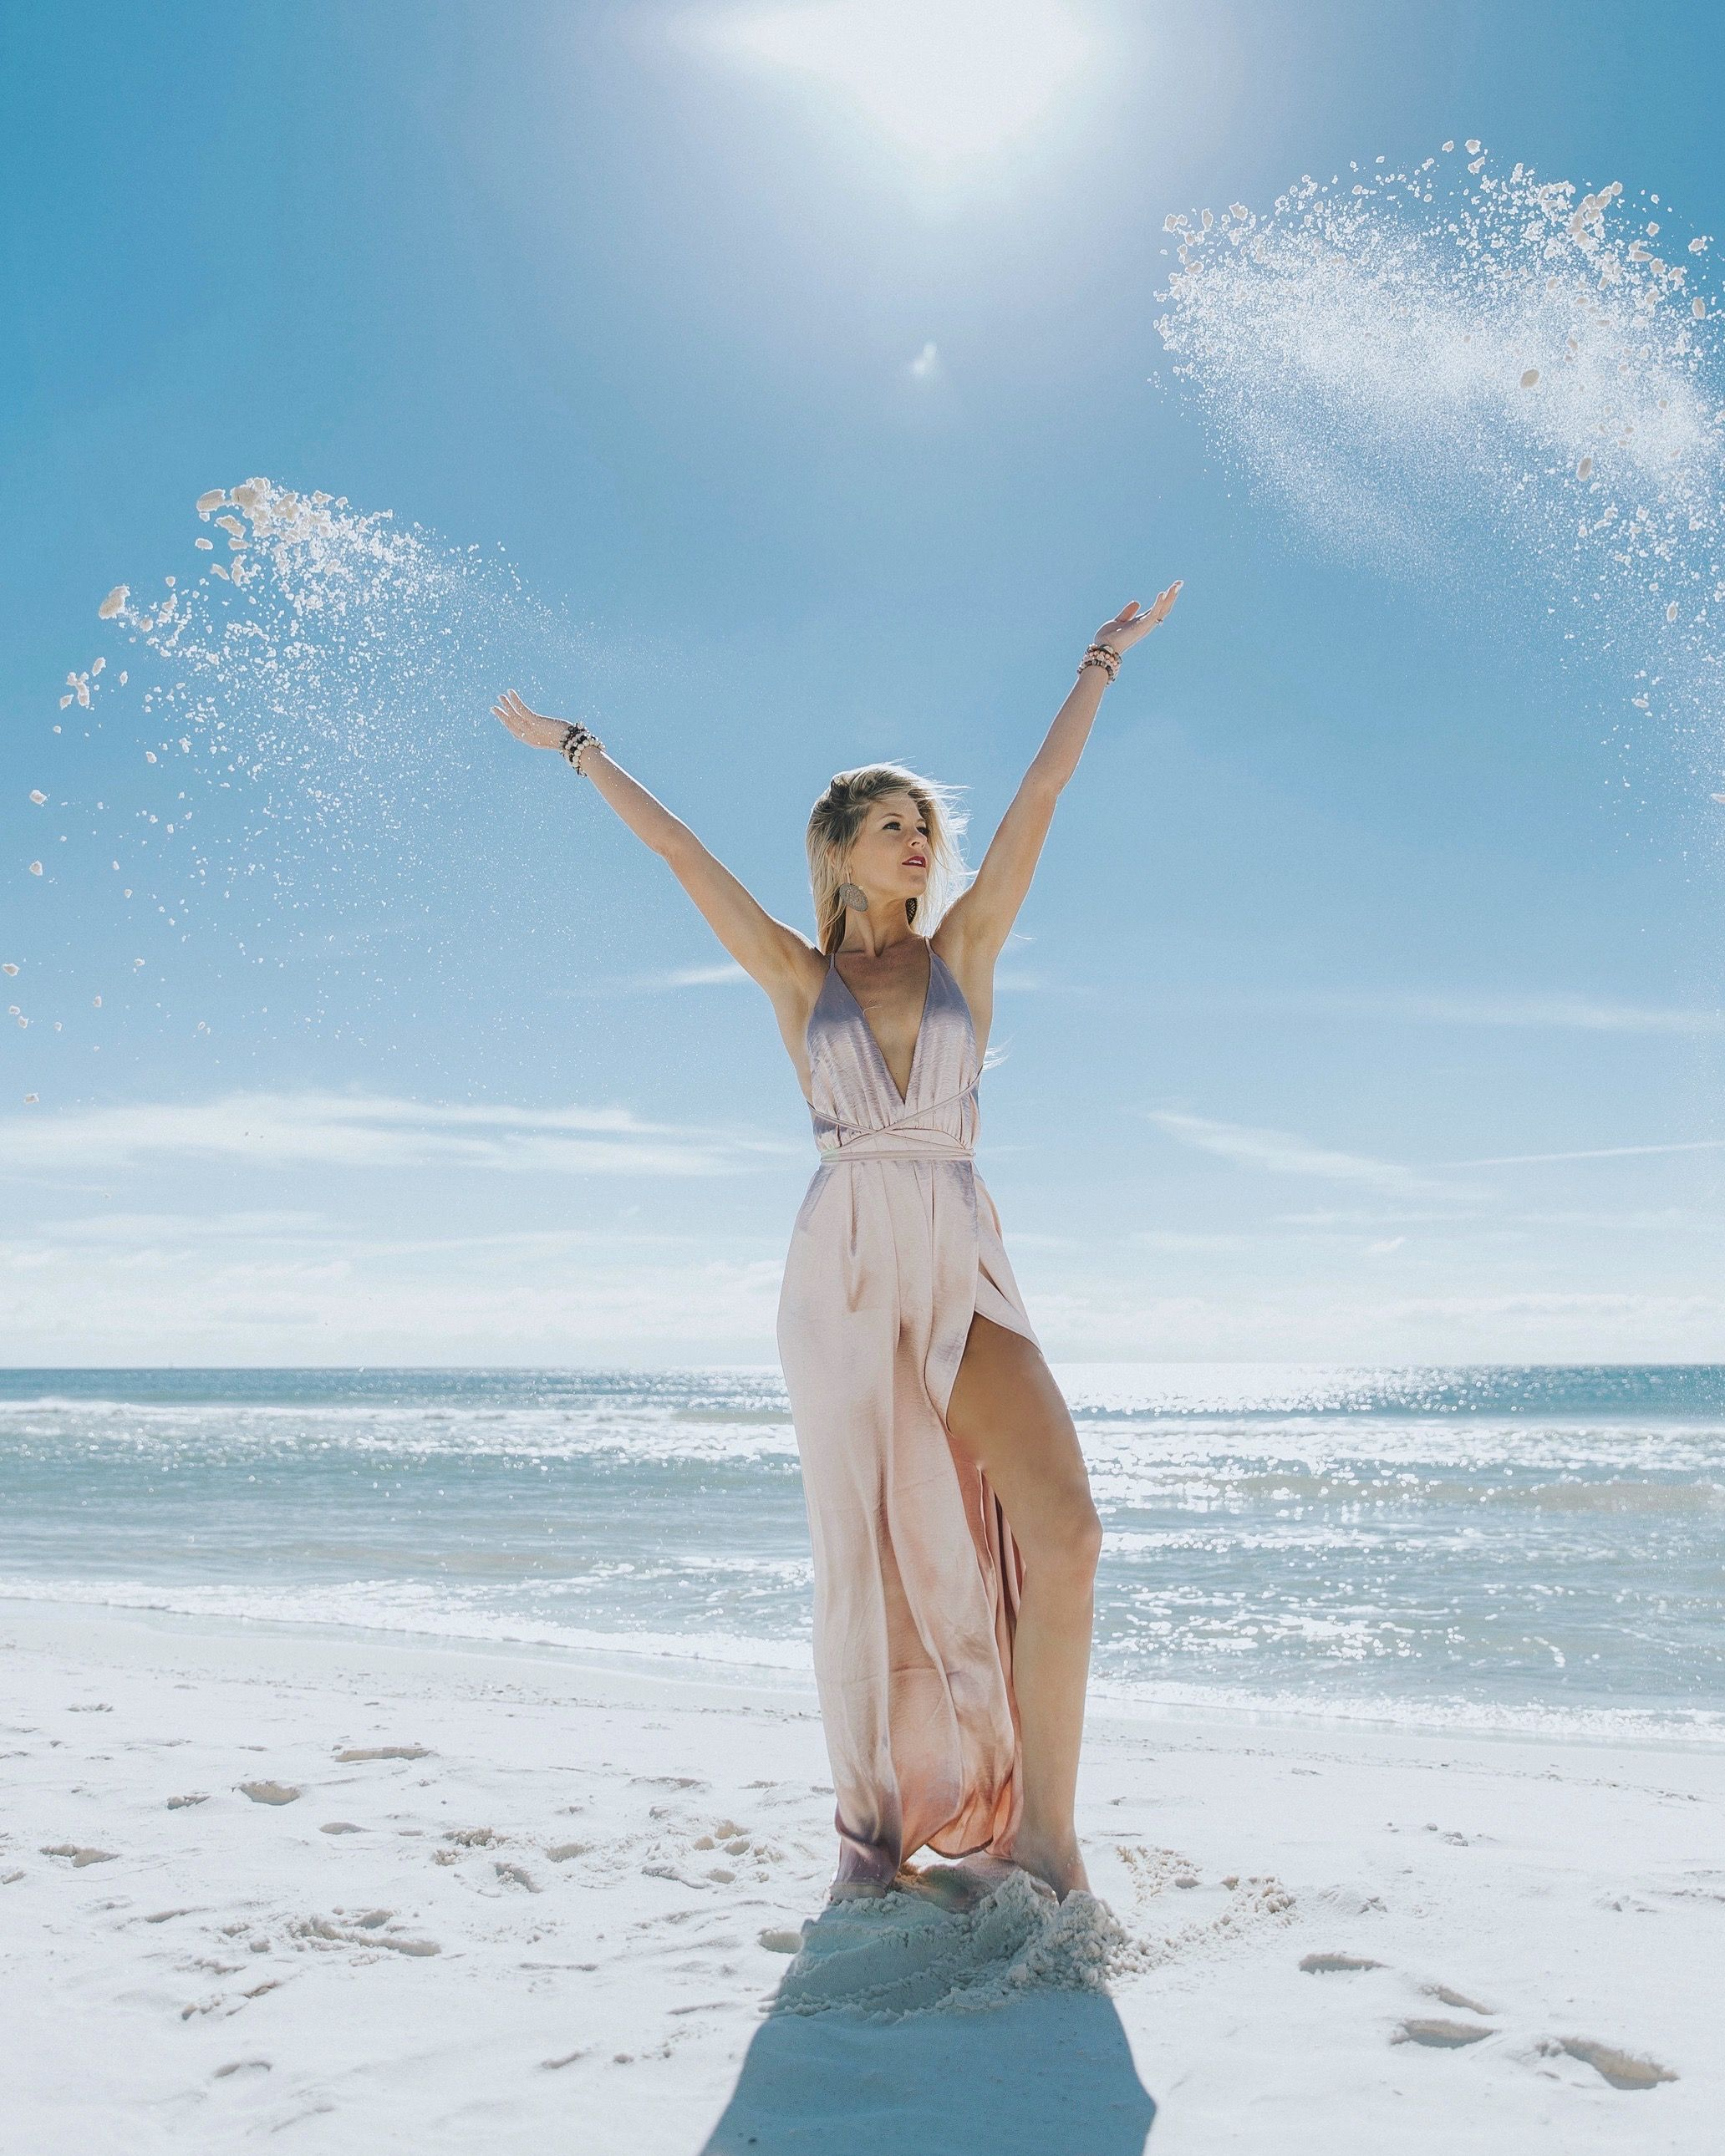 angel wings at the beach! #beach #angels #bloggerstyle #fashionblog #styleblogger #maxidress